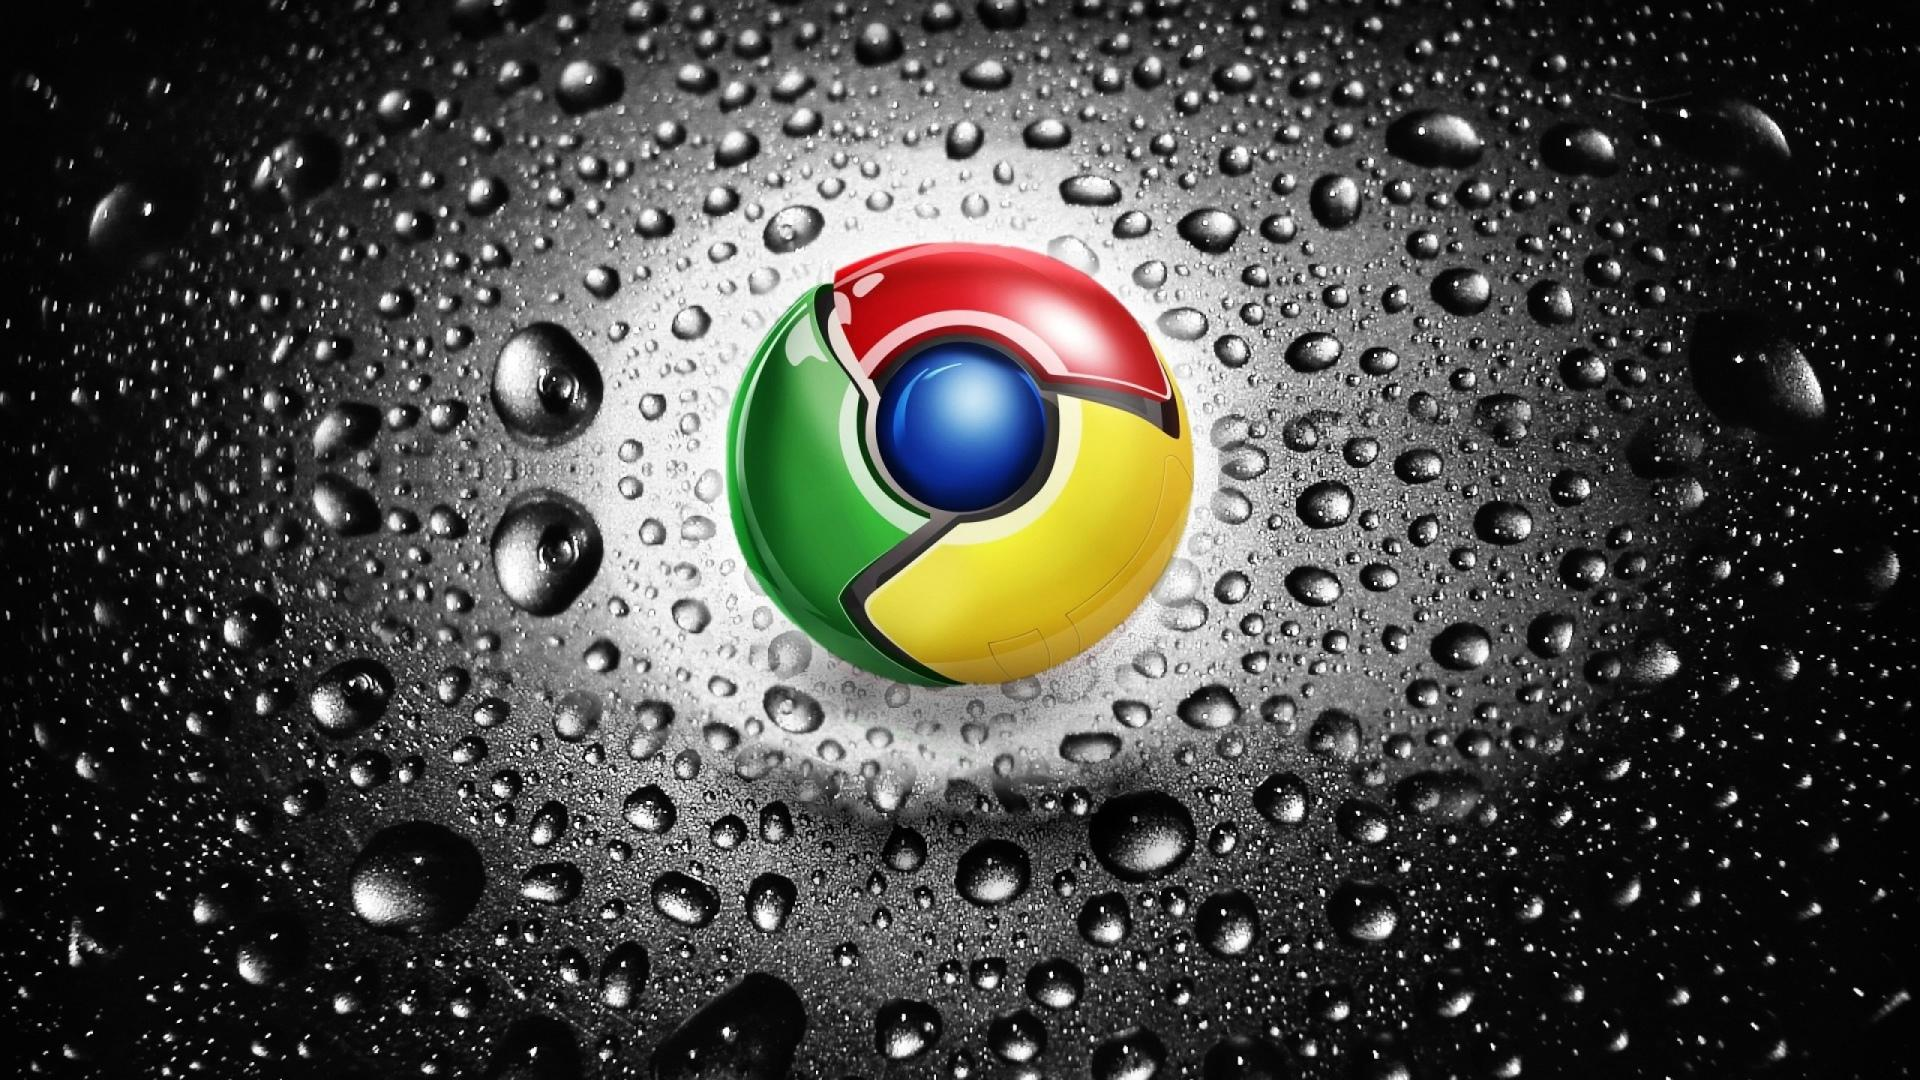 Google Chrome wallpapers HD quality